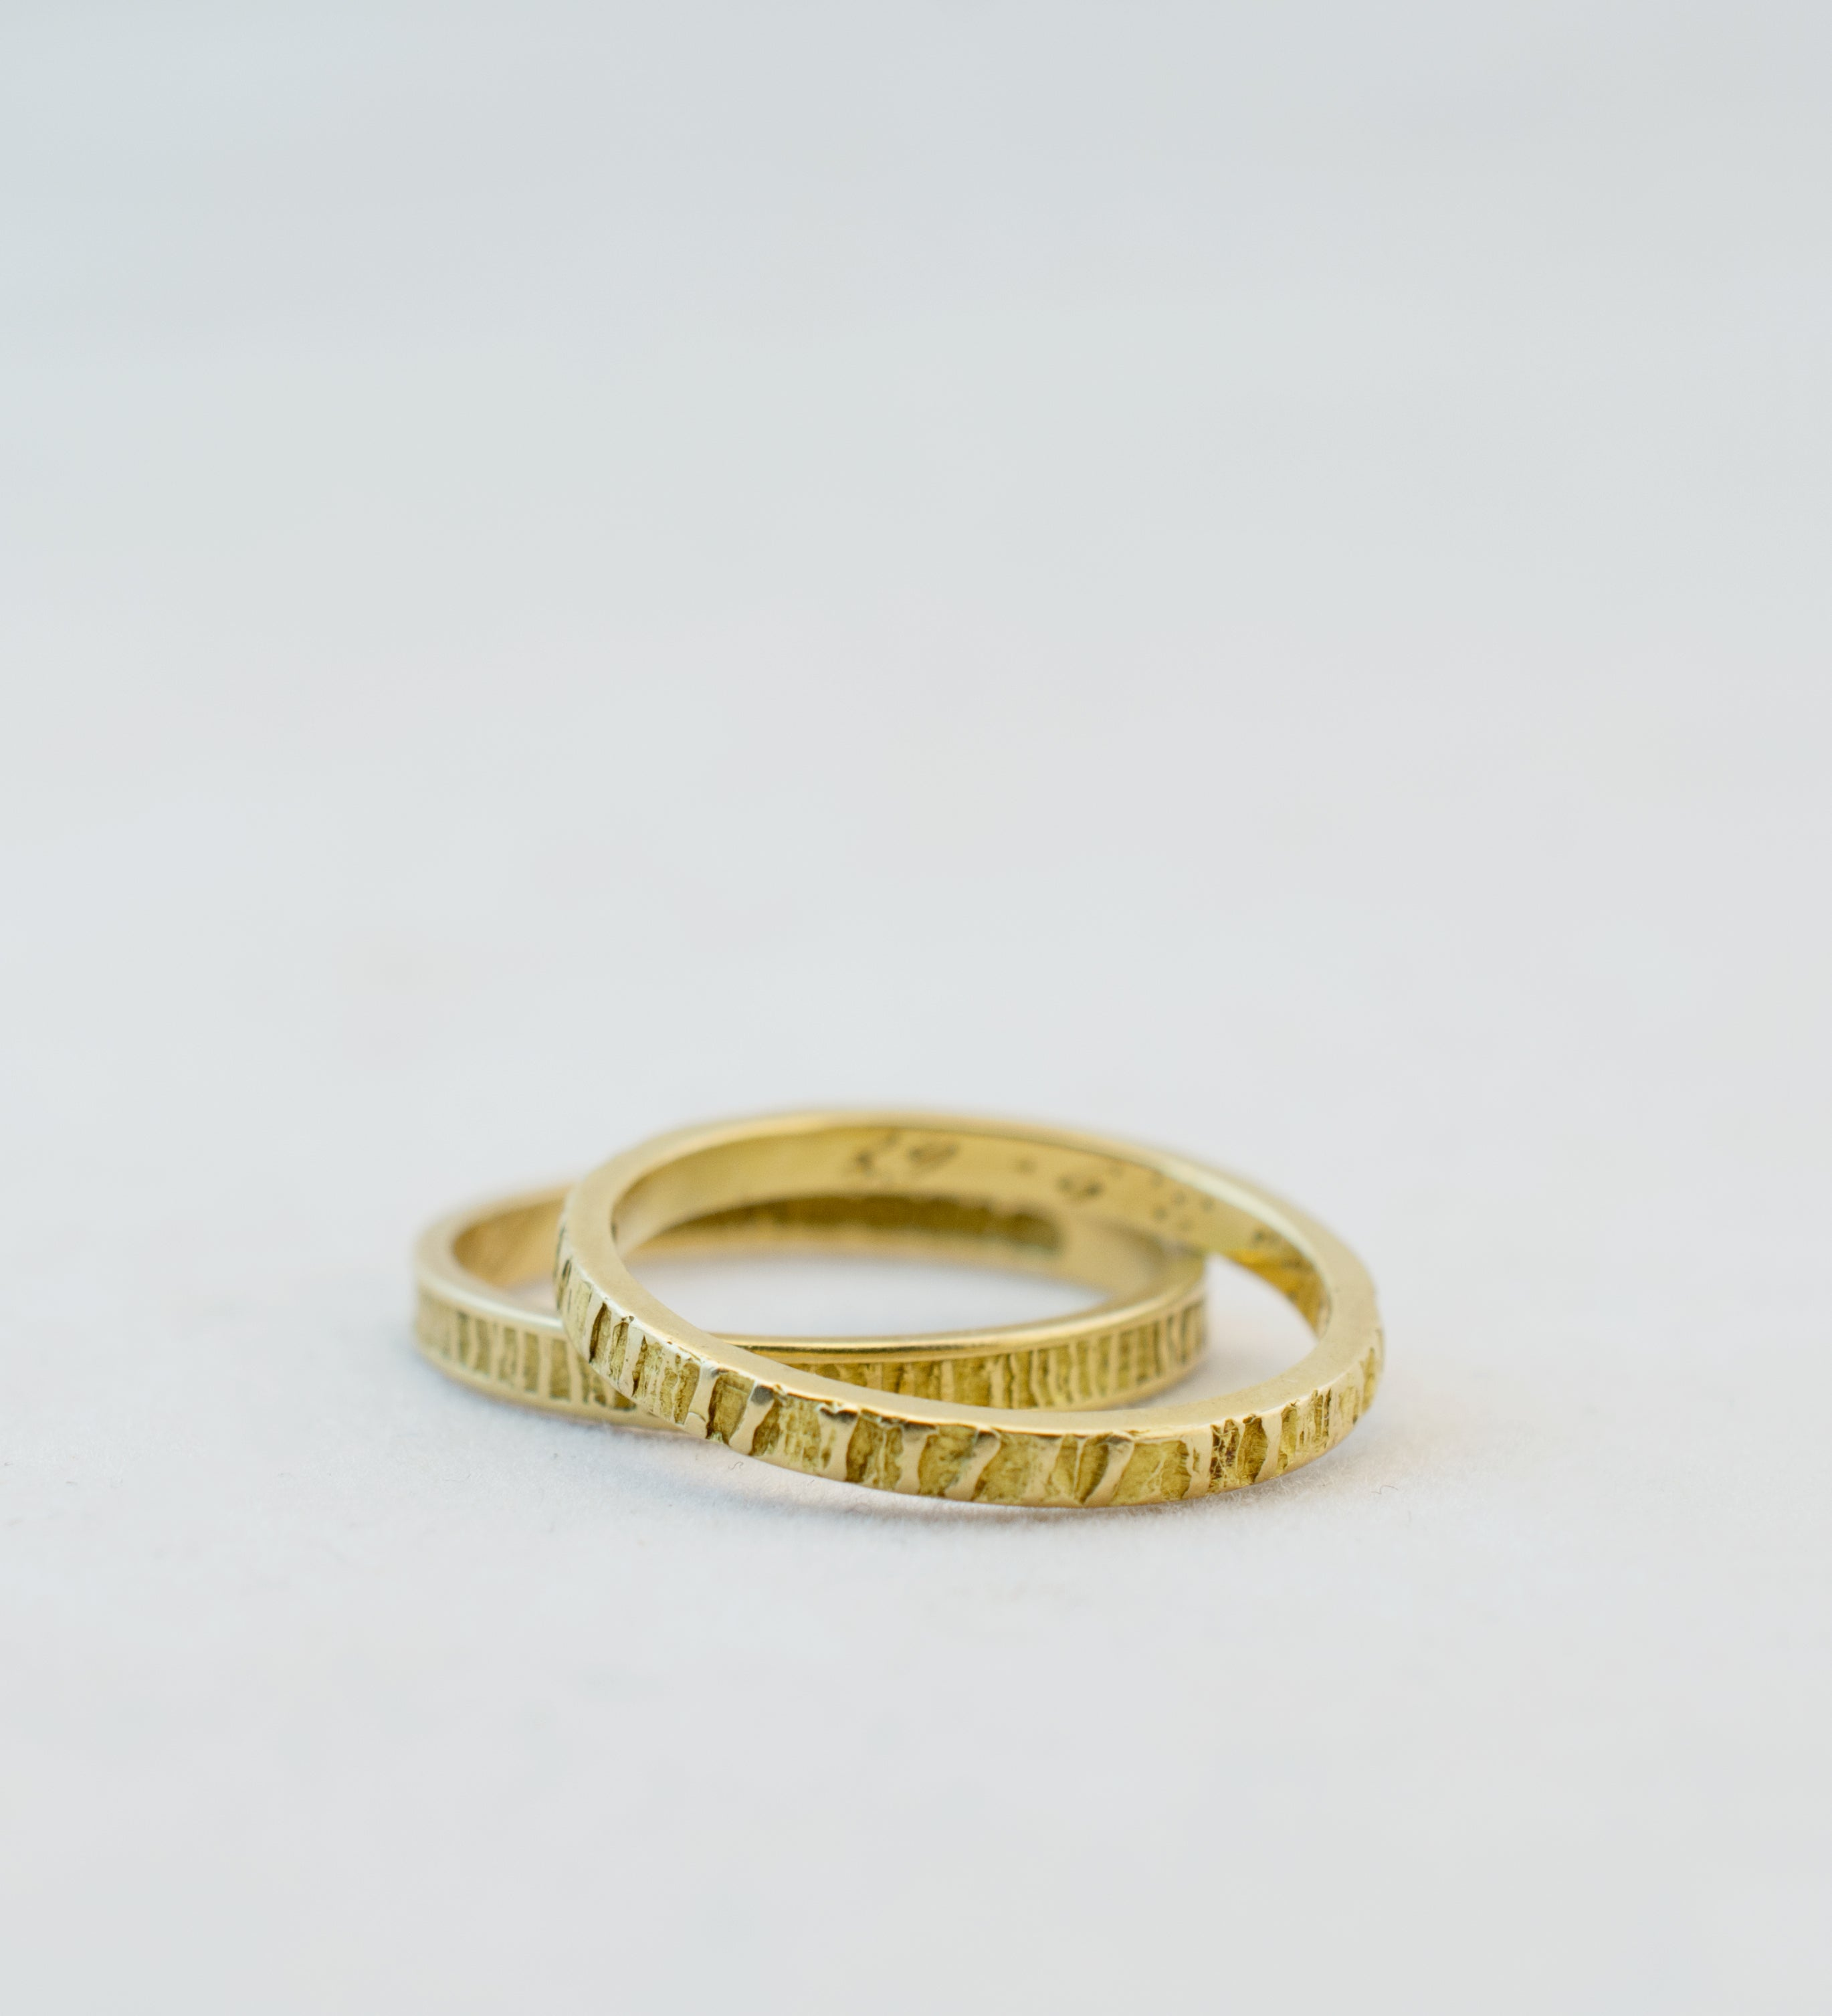 1970s Bjorn Weckstrom 14k Gold Lapland Rings - Sold - Hopea